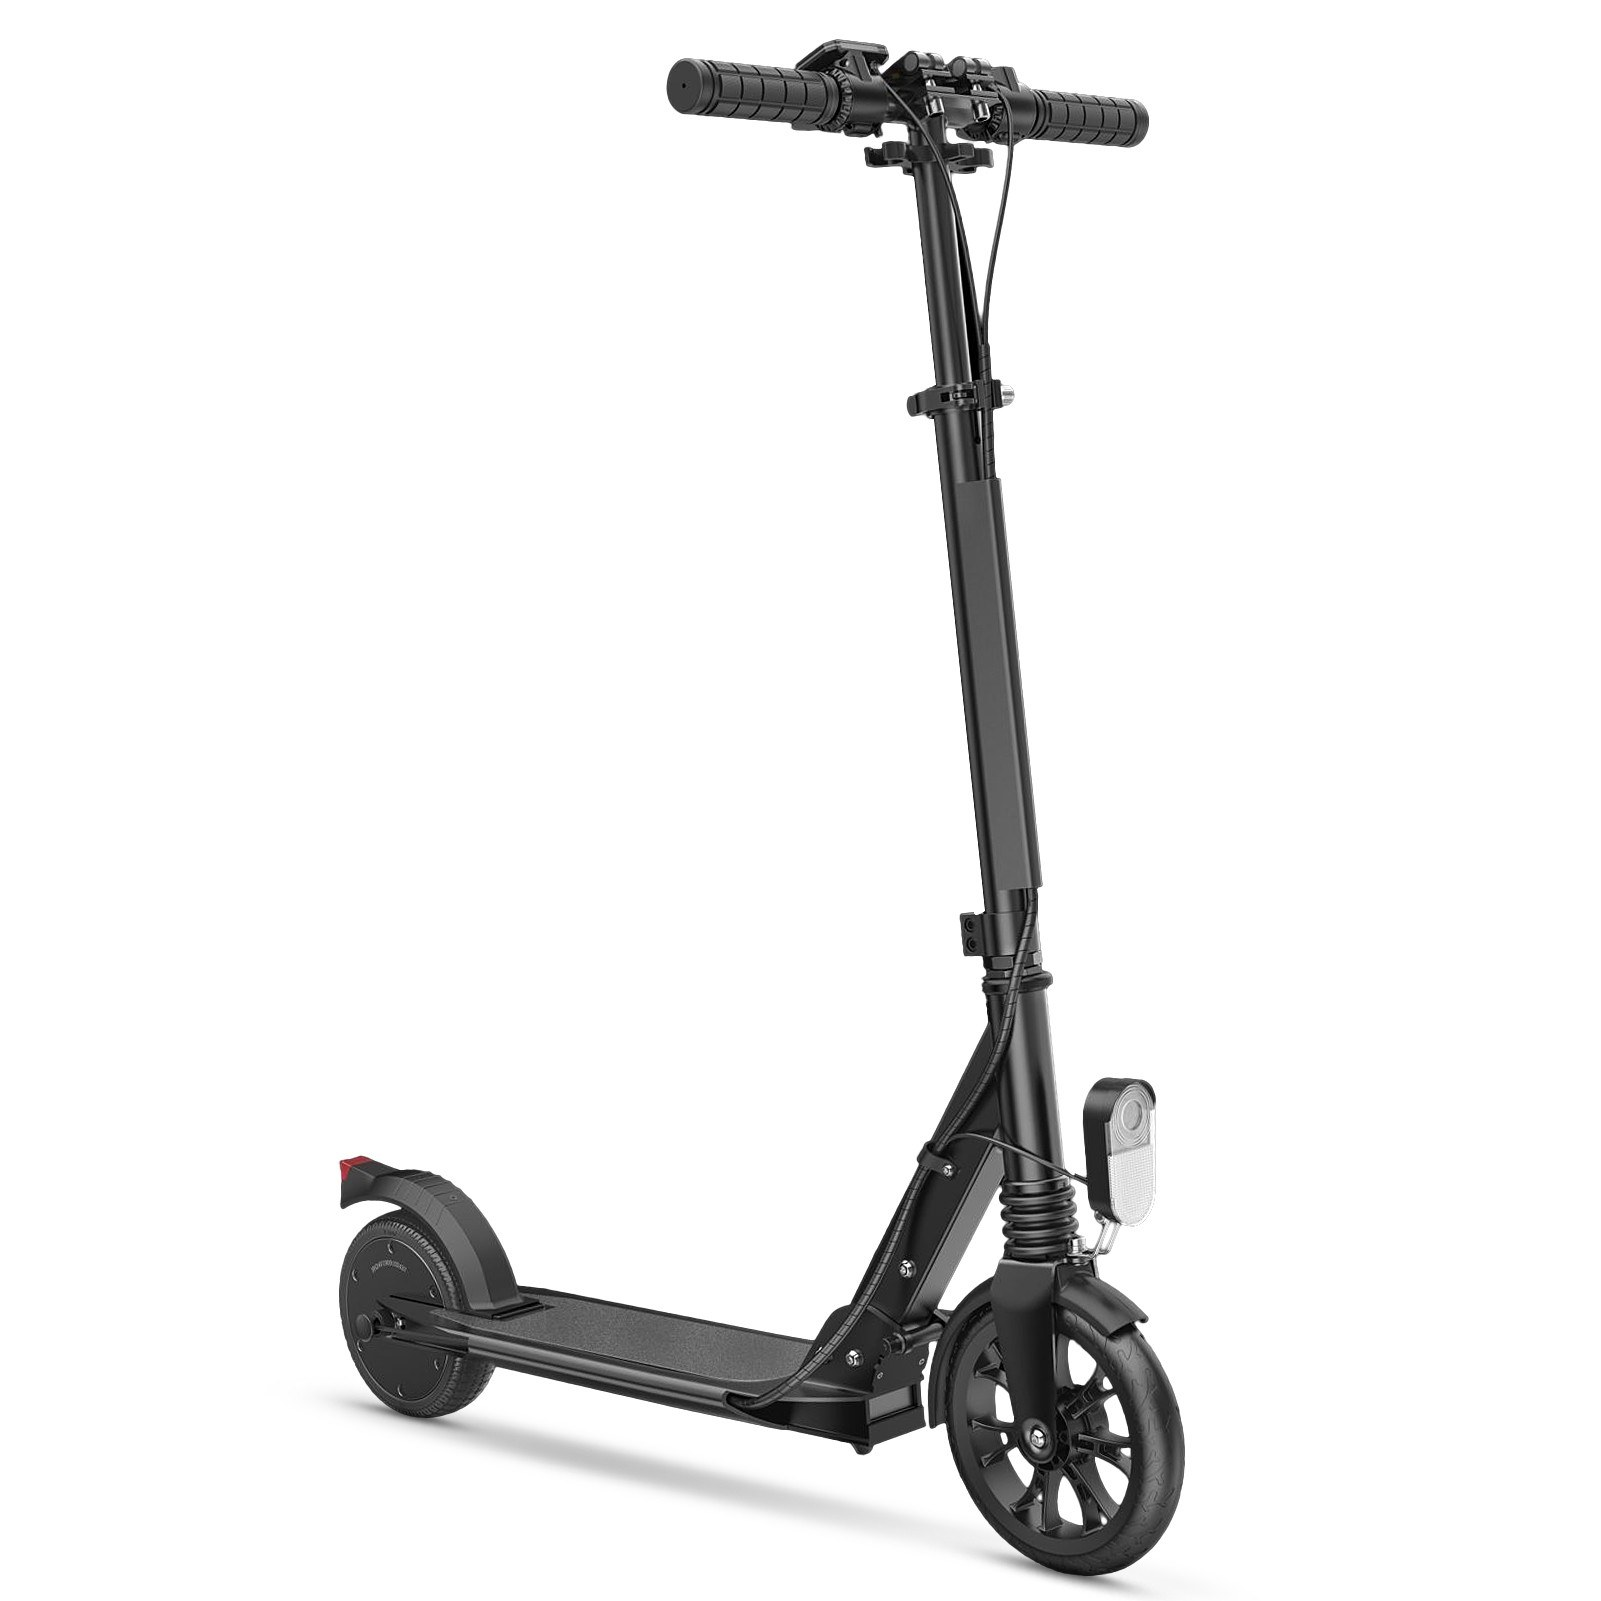 Tomtop - [EU Warehouse] $90 OFF EYU E9SM 200W Folding Electric Scooter with Headlight Meter Speaker, Free Shipping $199.99